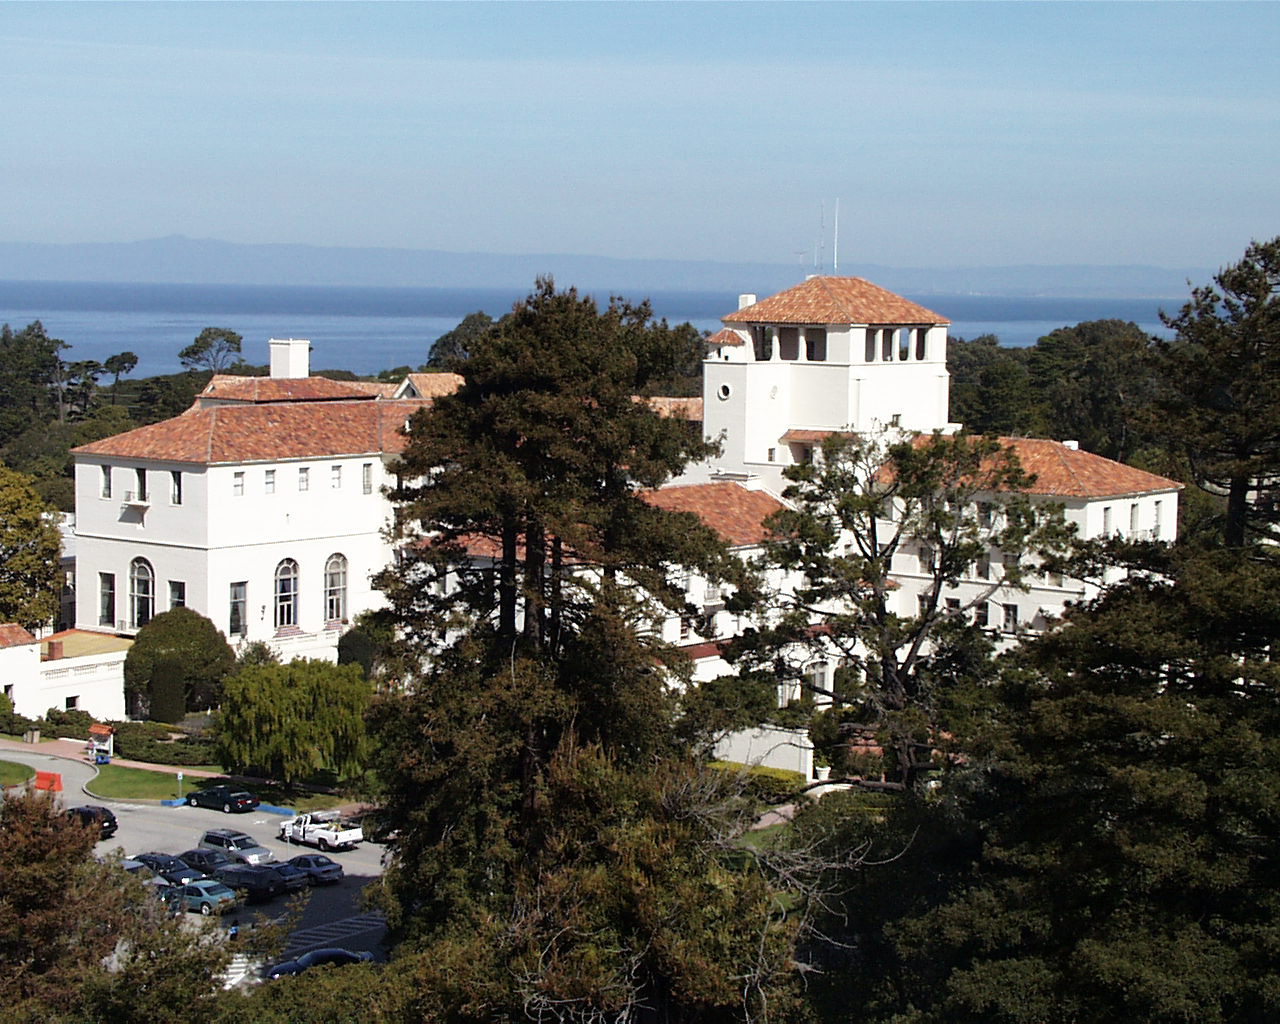 Hotel Del Monte in Monterey, California